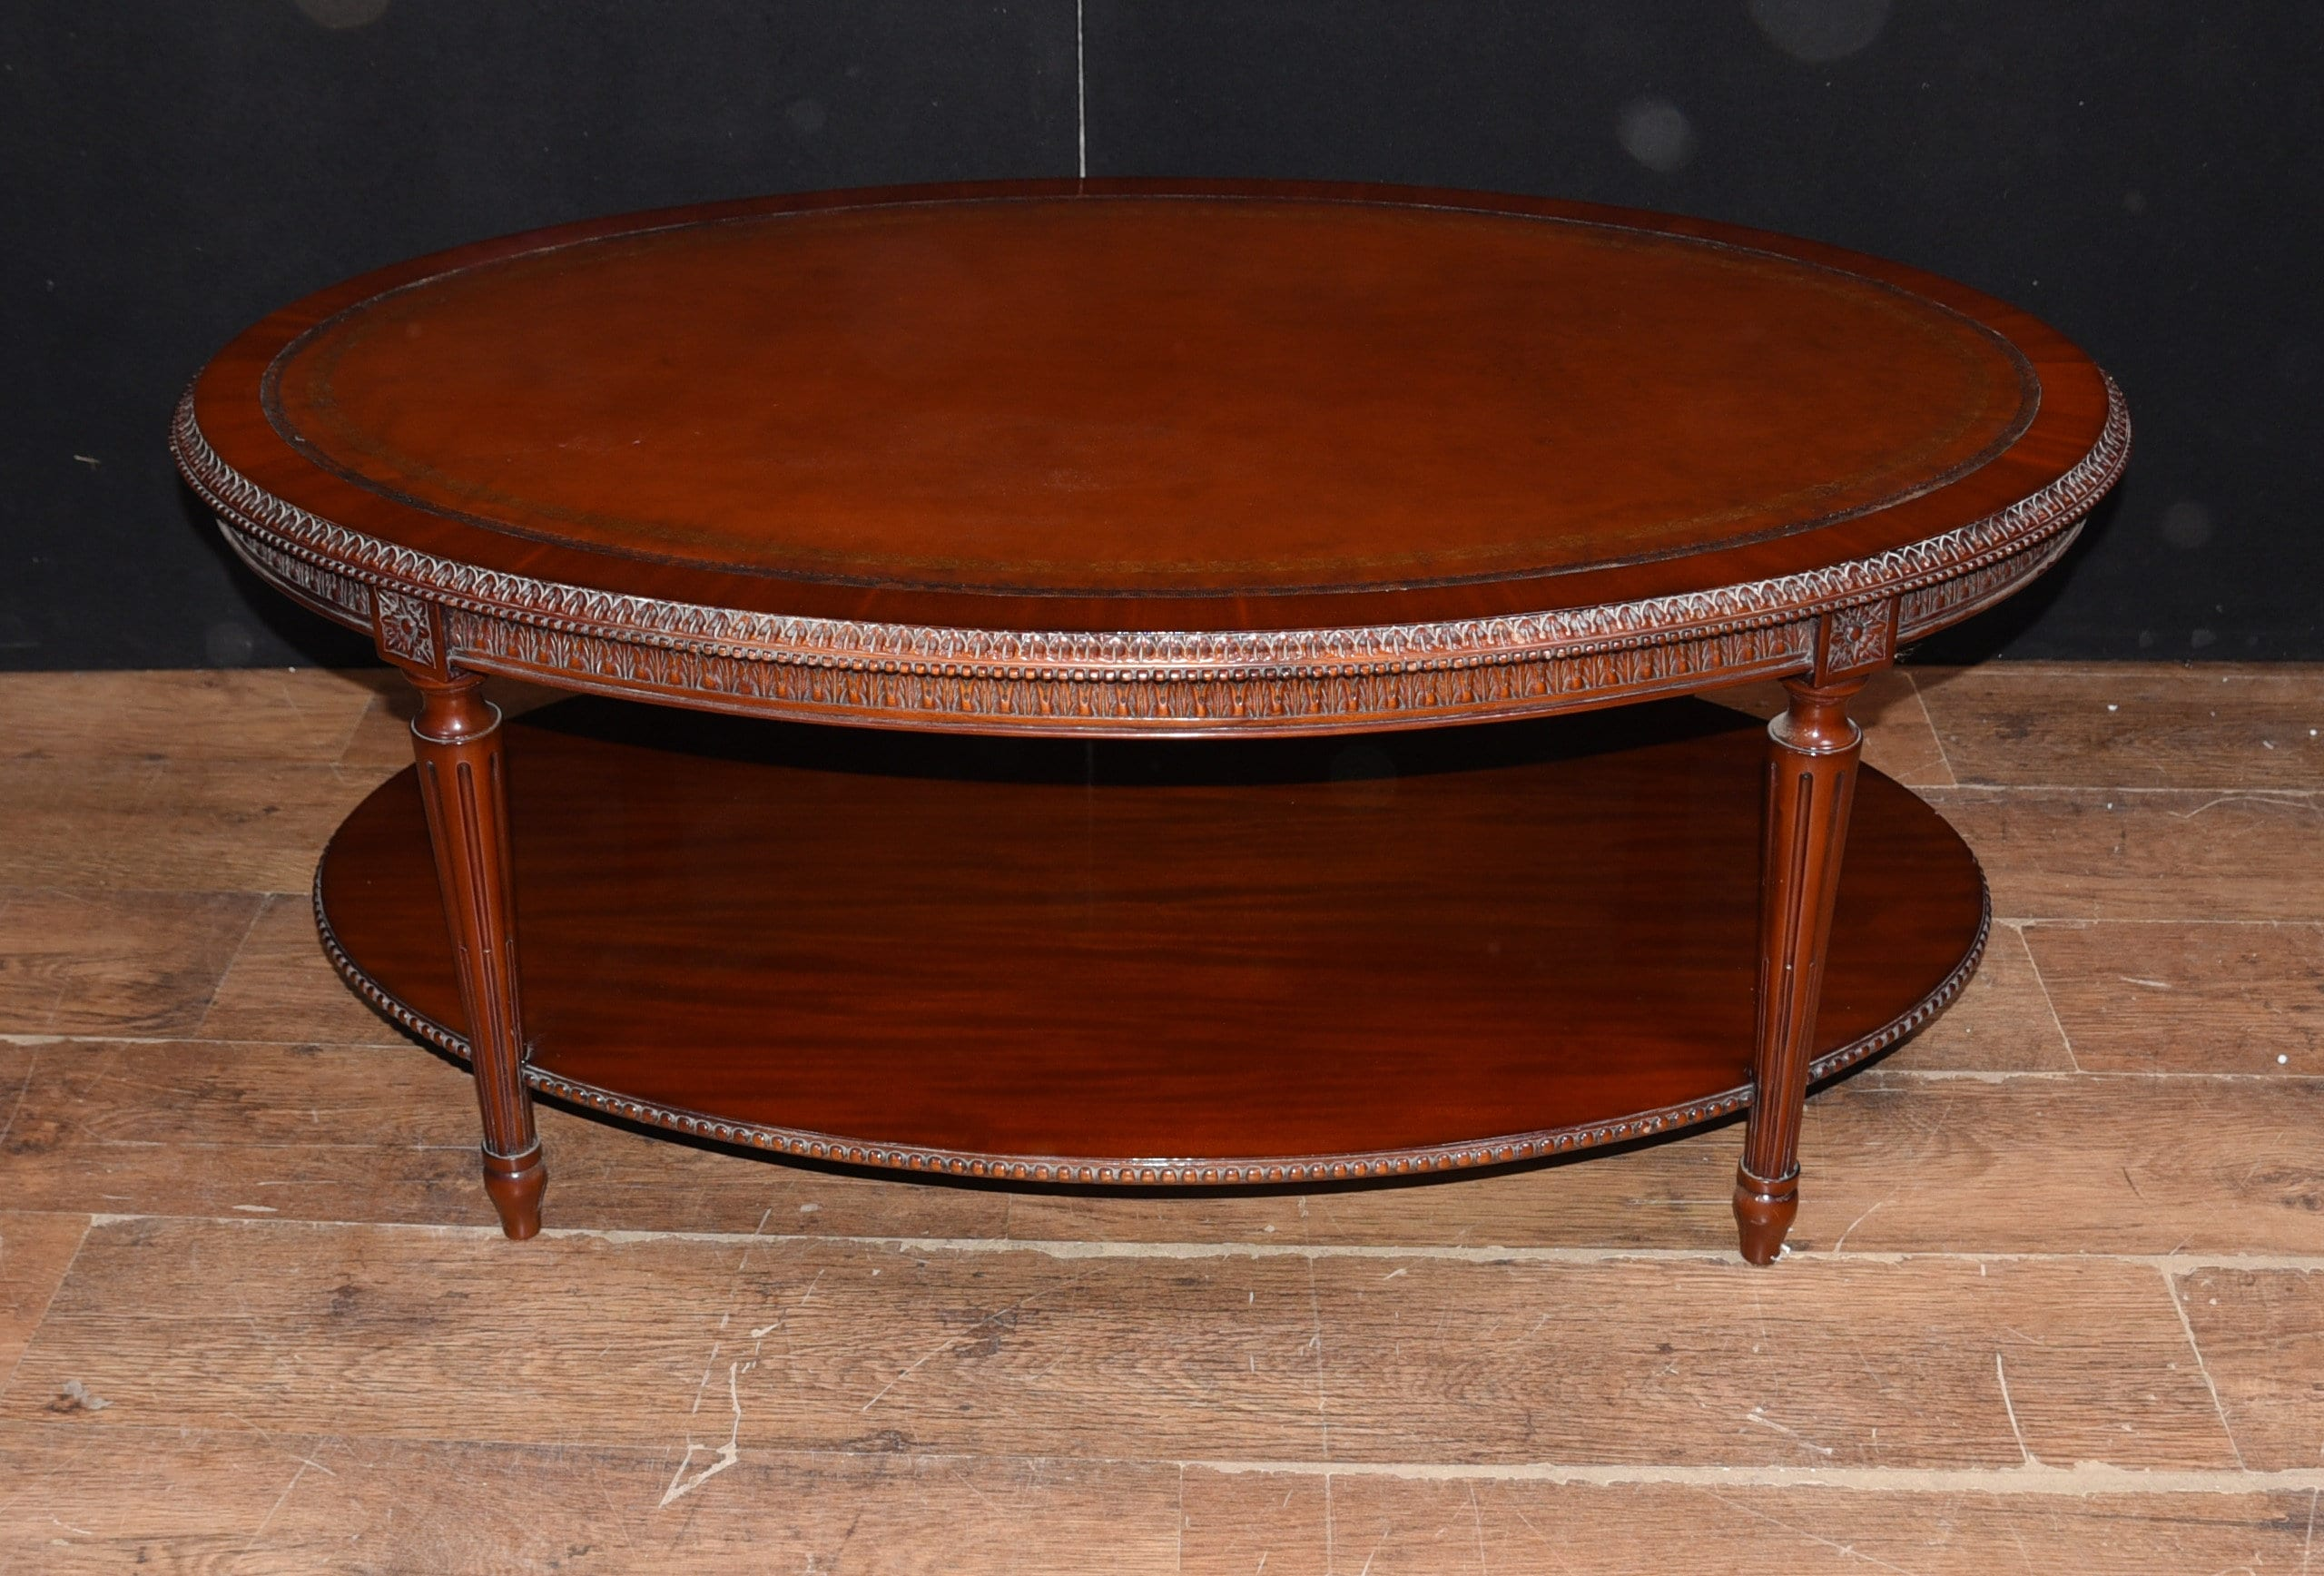 - Regency Oval Coffee Table Mahogany Leather Top Tables Etsy